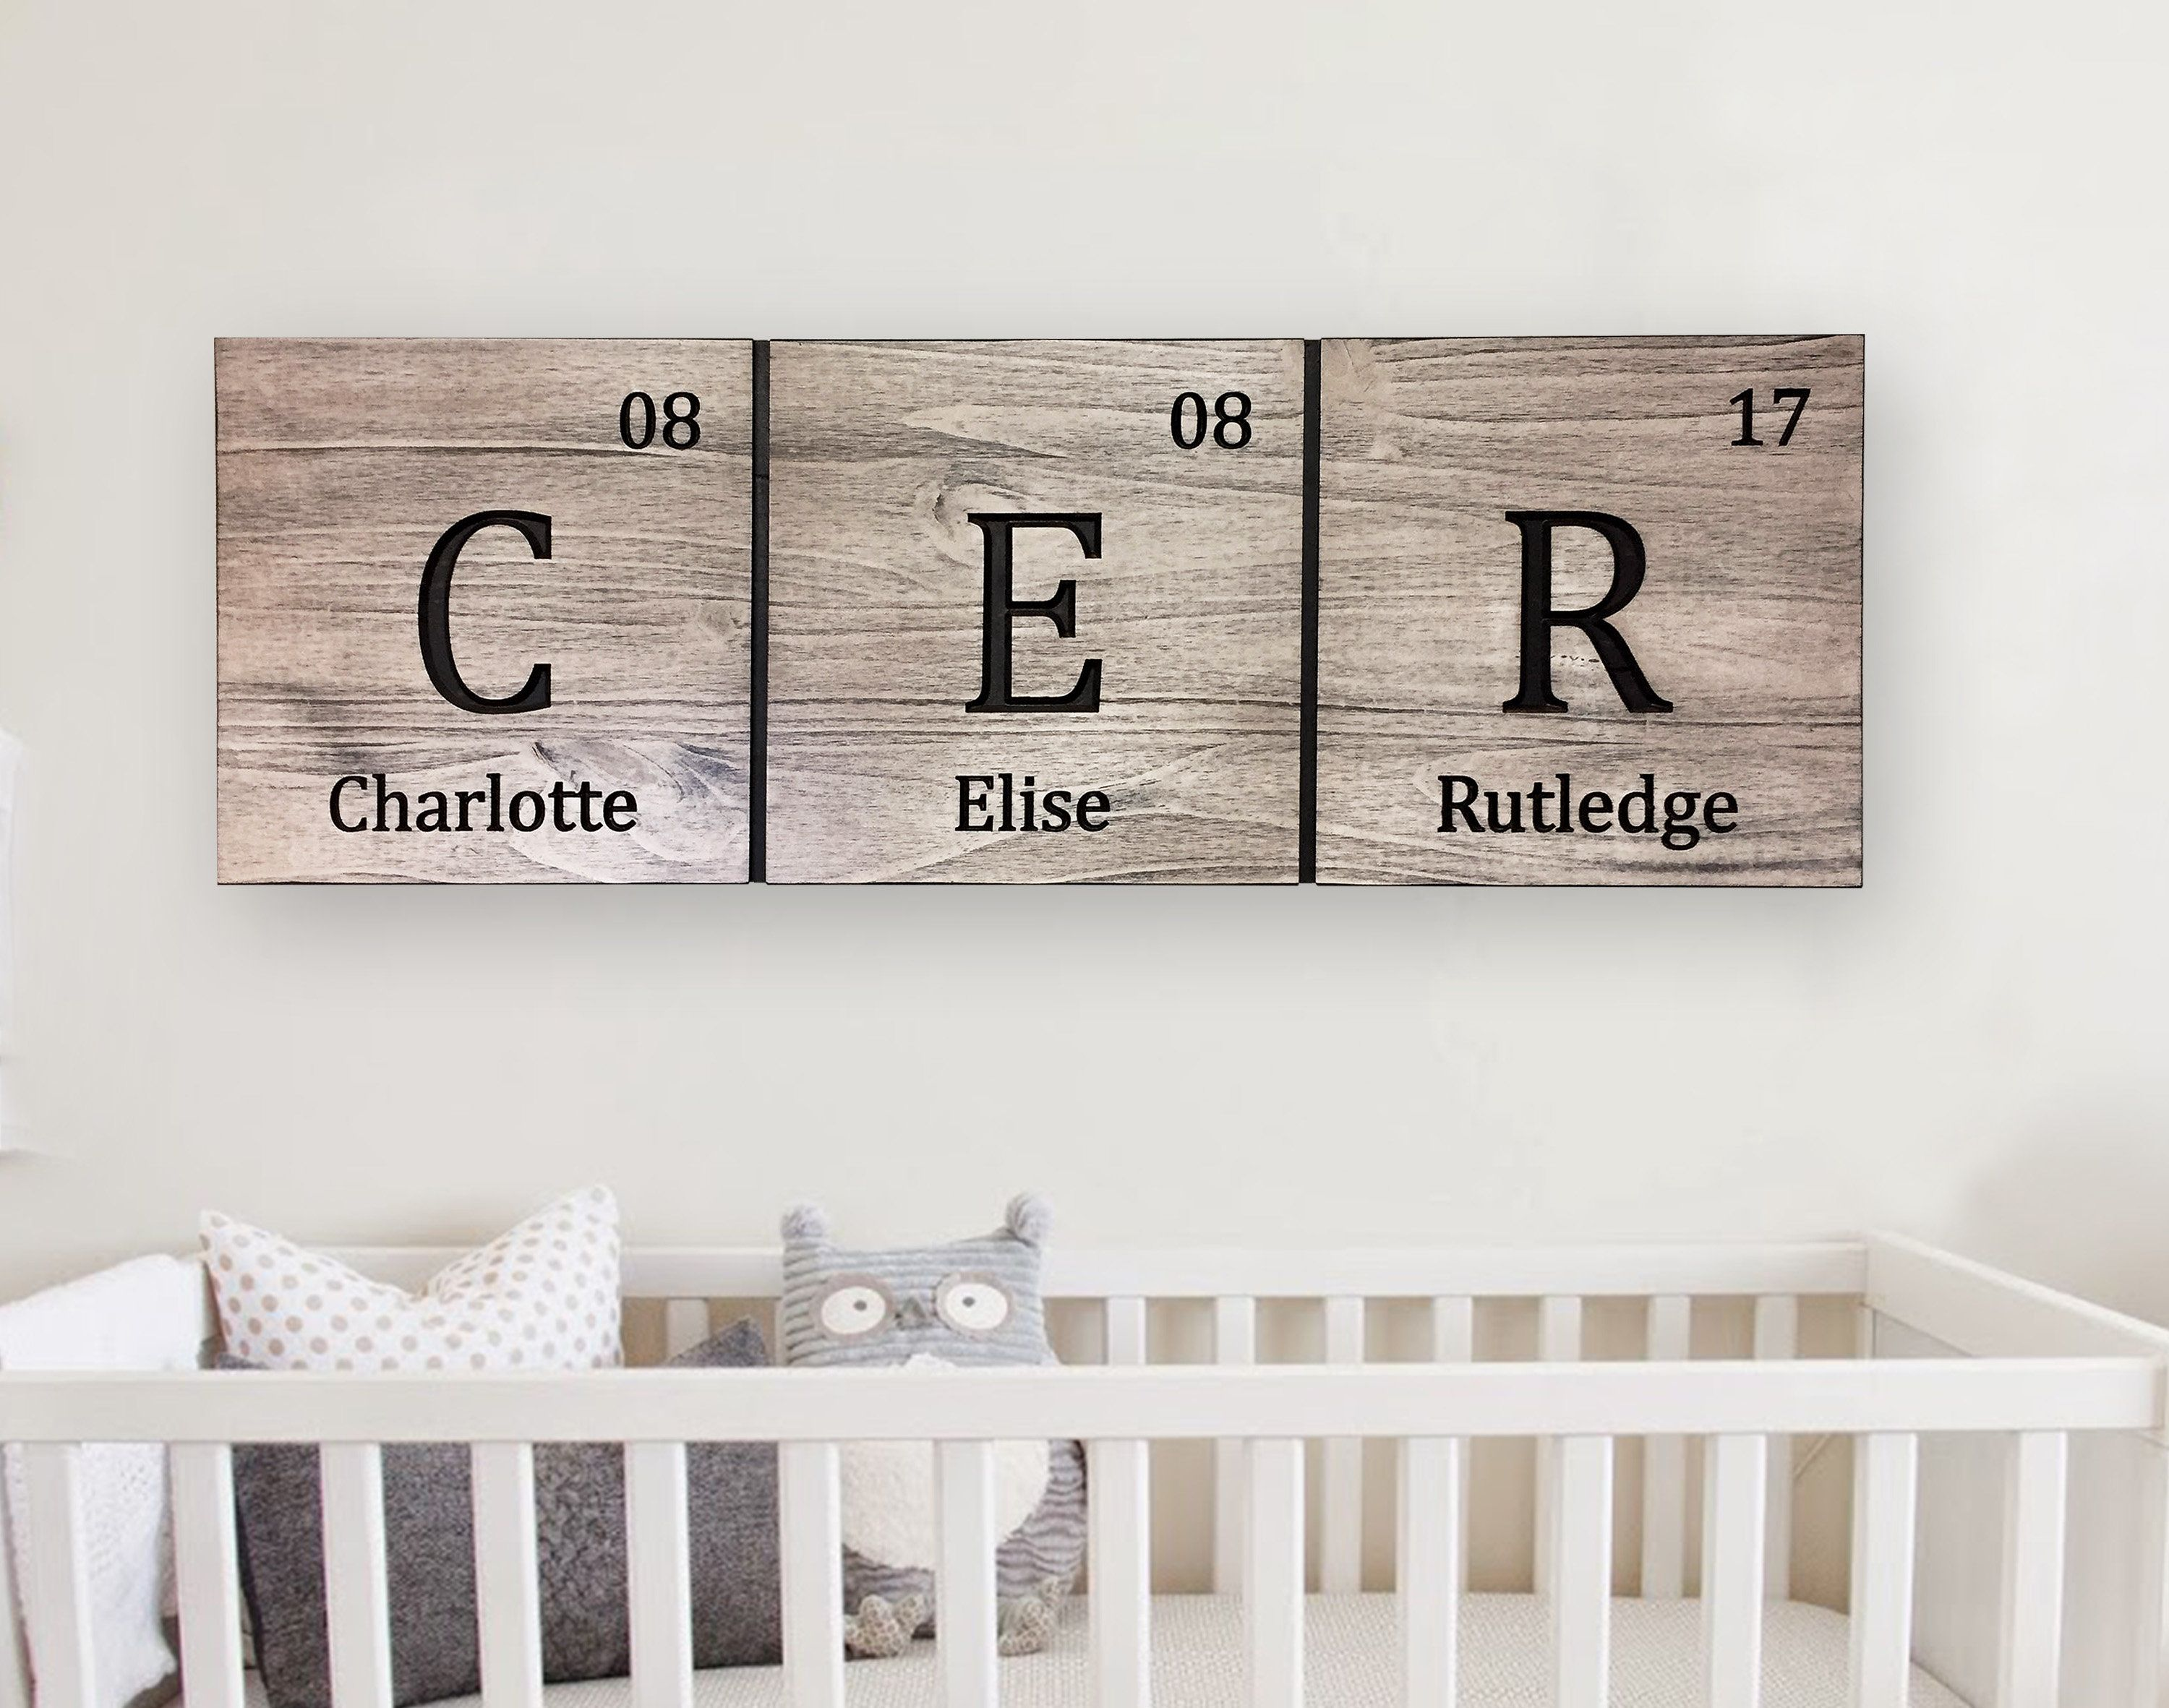 Childs birth date sign periodic table elements personalized childs birth date sign periodic table elements personalized name date urtaz Choice Image